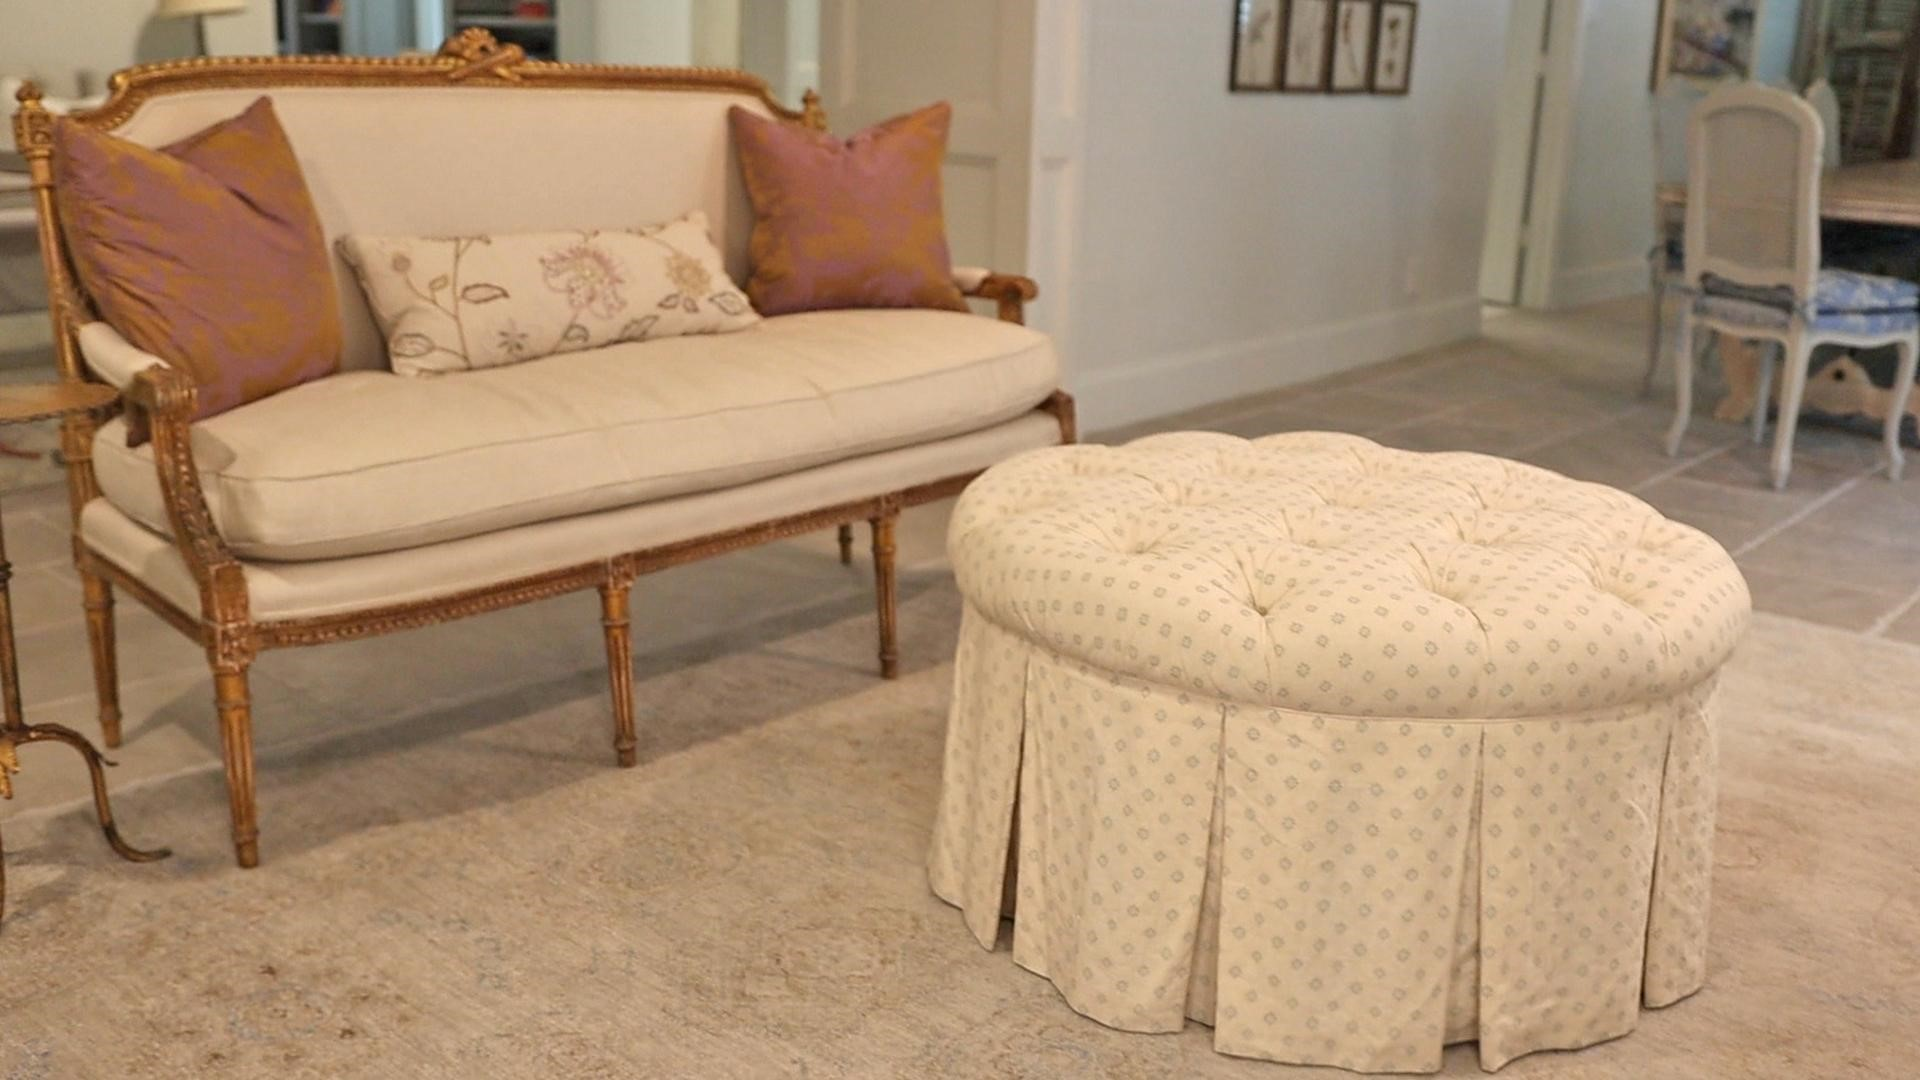 The patterned cream and blue french country furniture ottoman next to the solid settee by Amitha